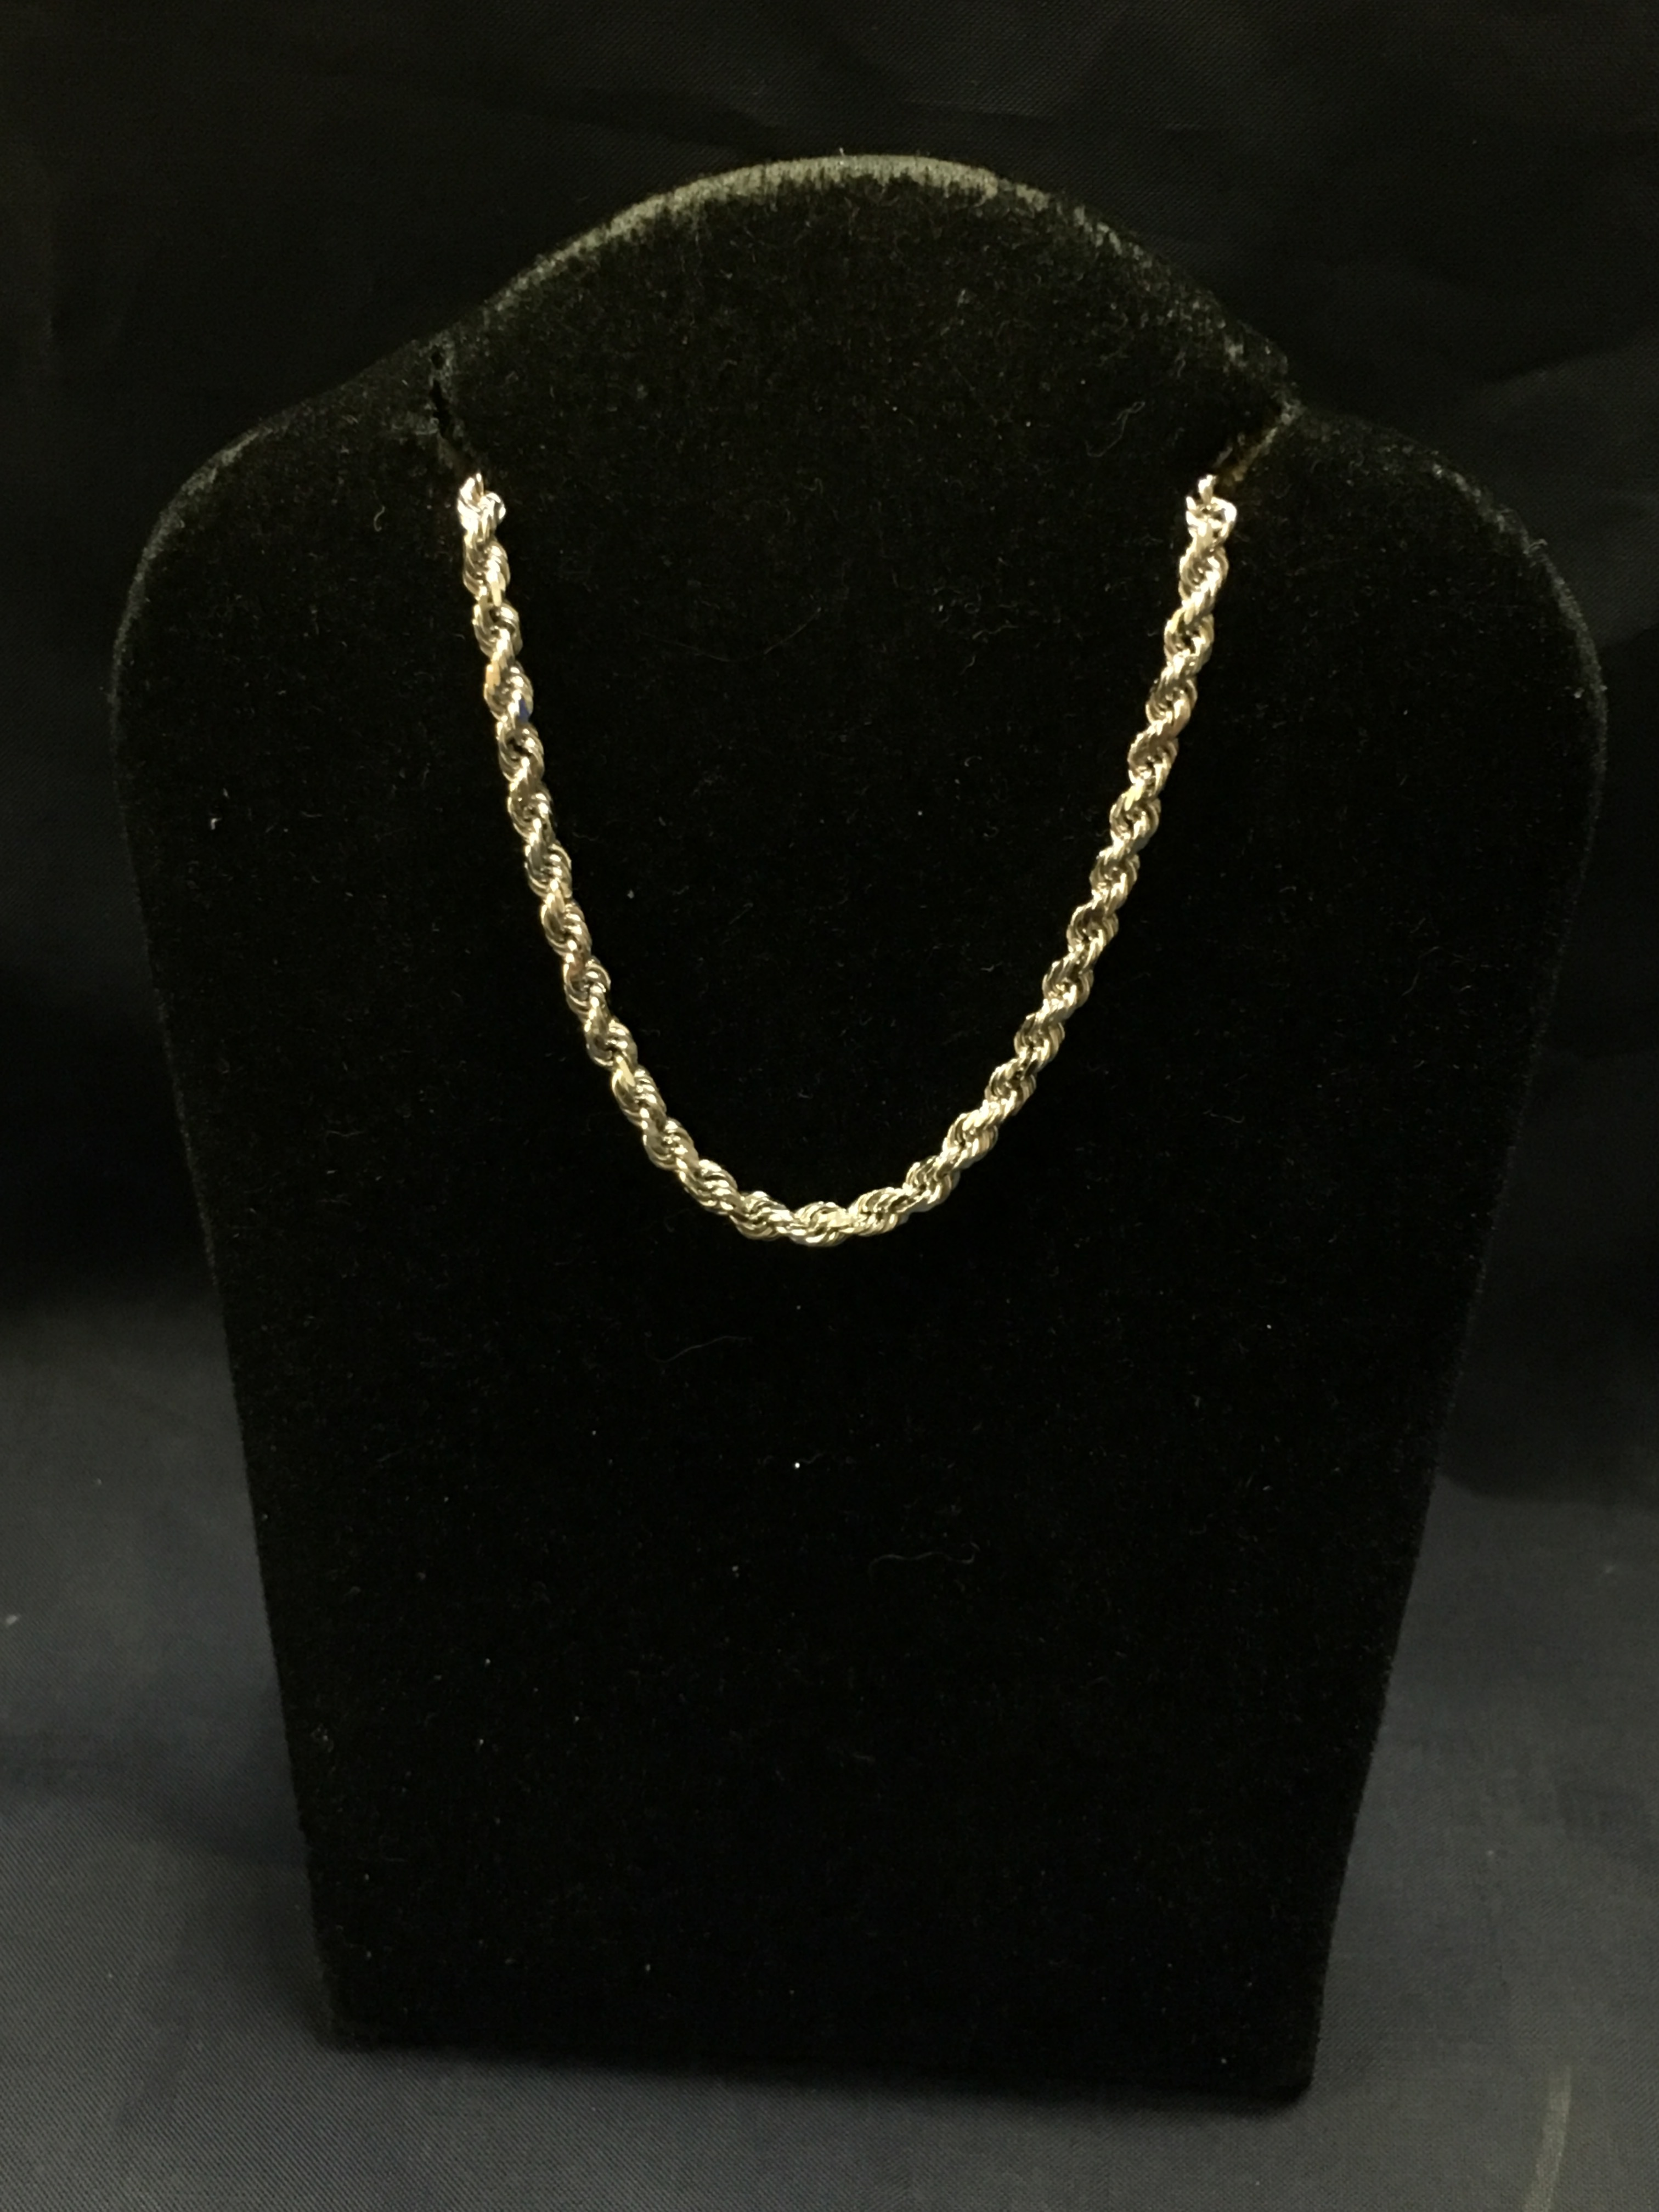 14KT WHITE GOLD TWIST ROPE CHAIN. LENGTH: 16